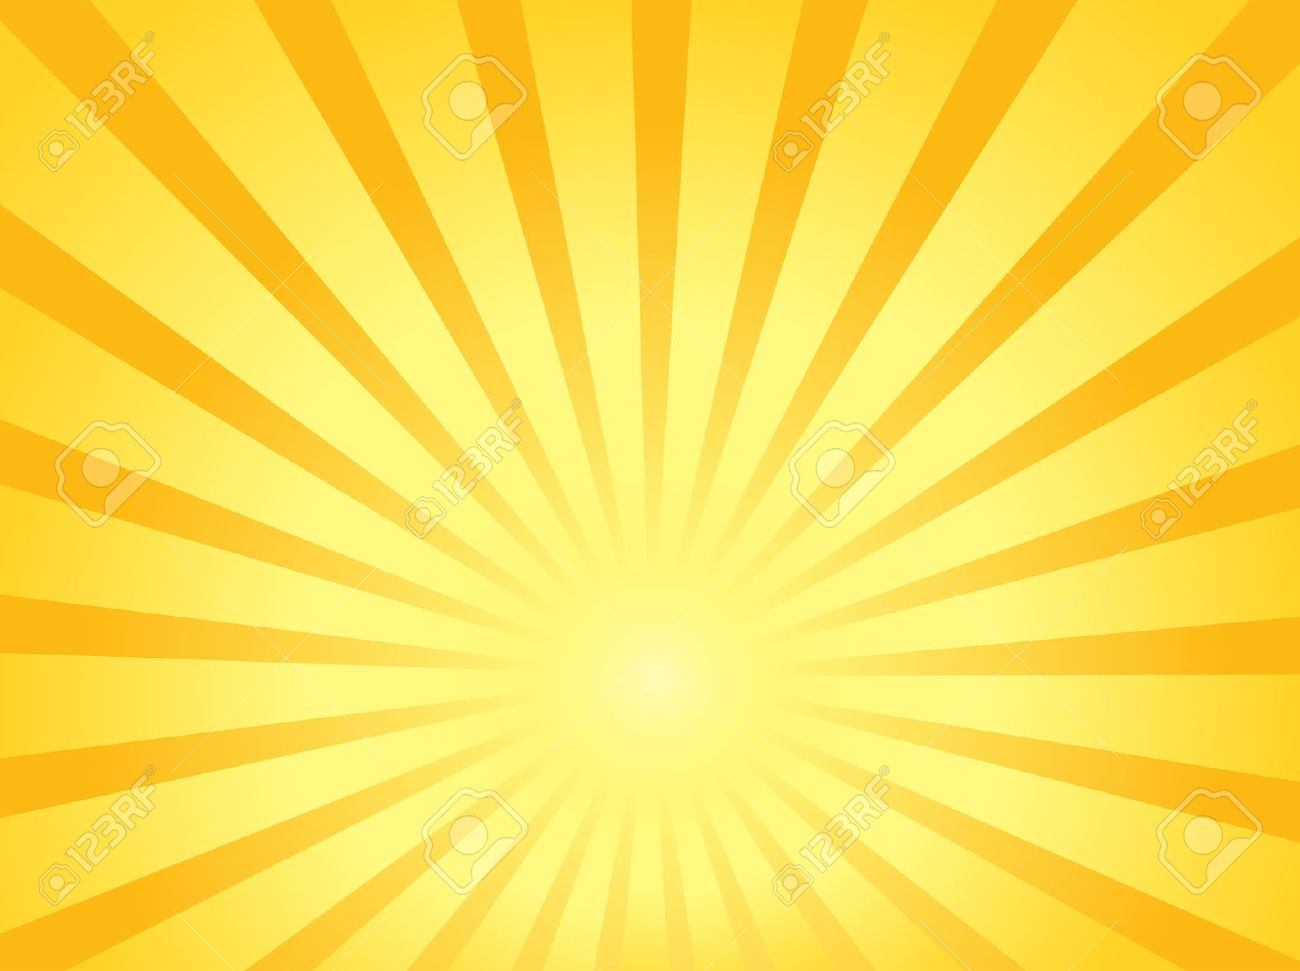 Clipart ray of sunshine.